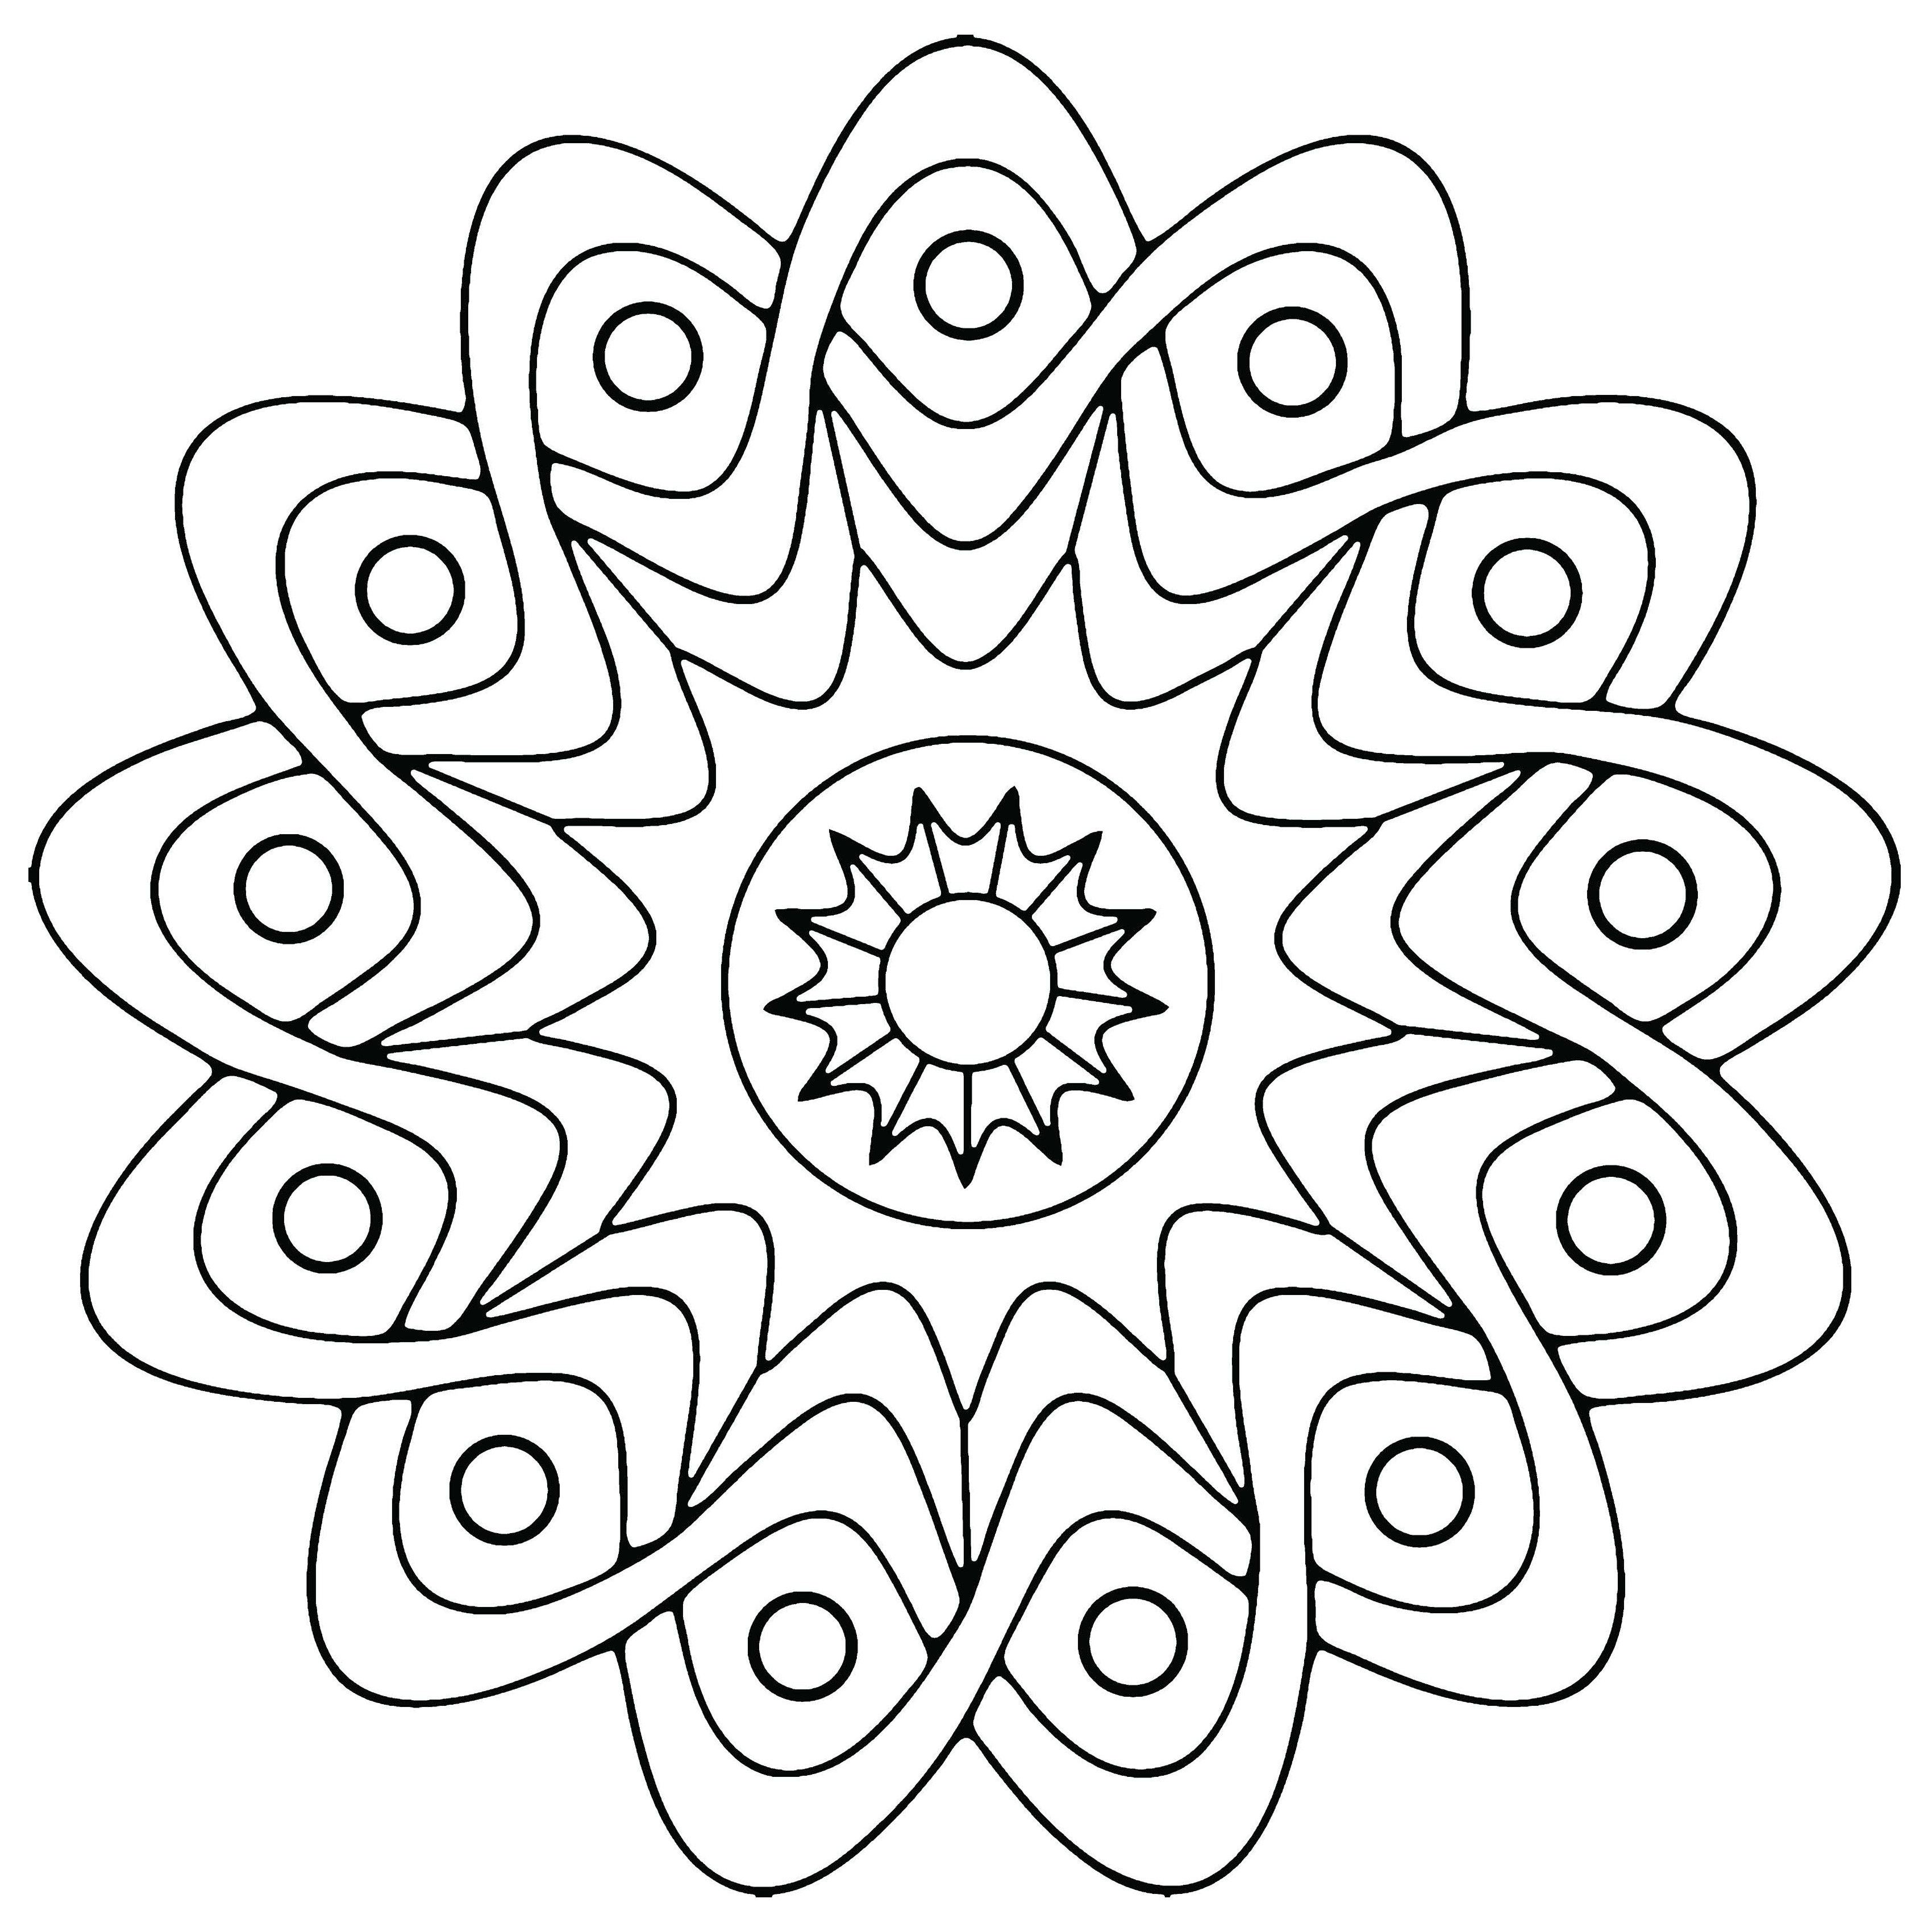 Free Mindfulness Coloring Pages at GetDrawings | Free download